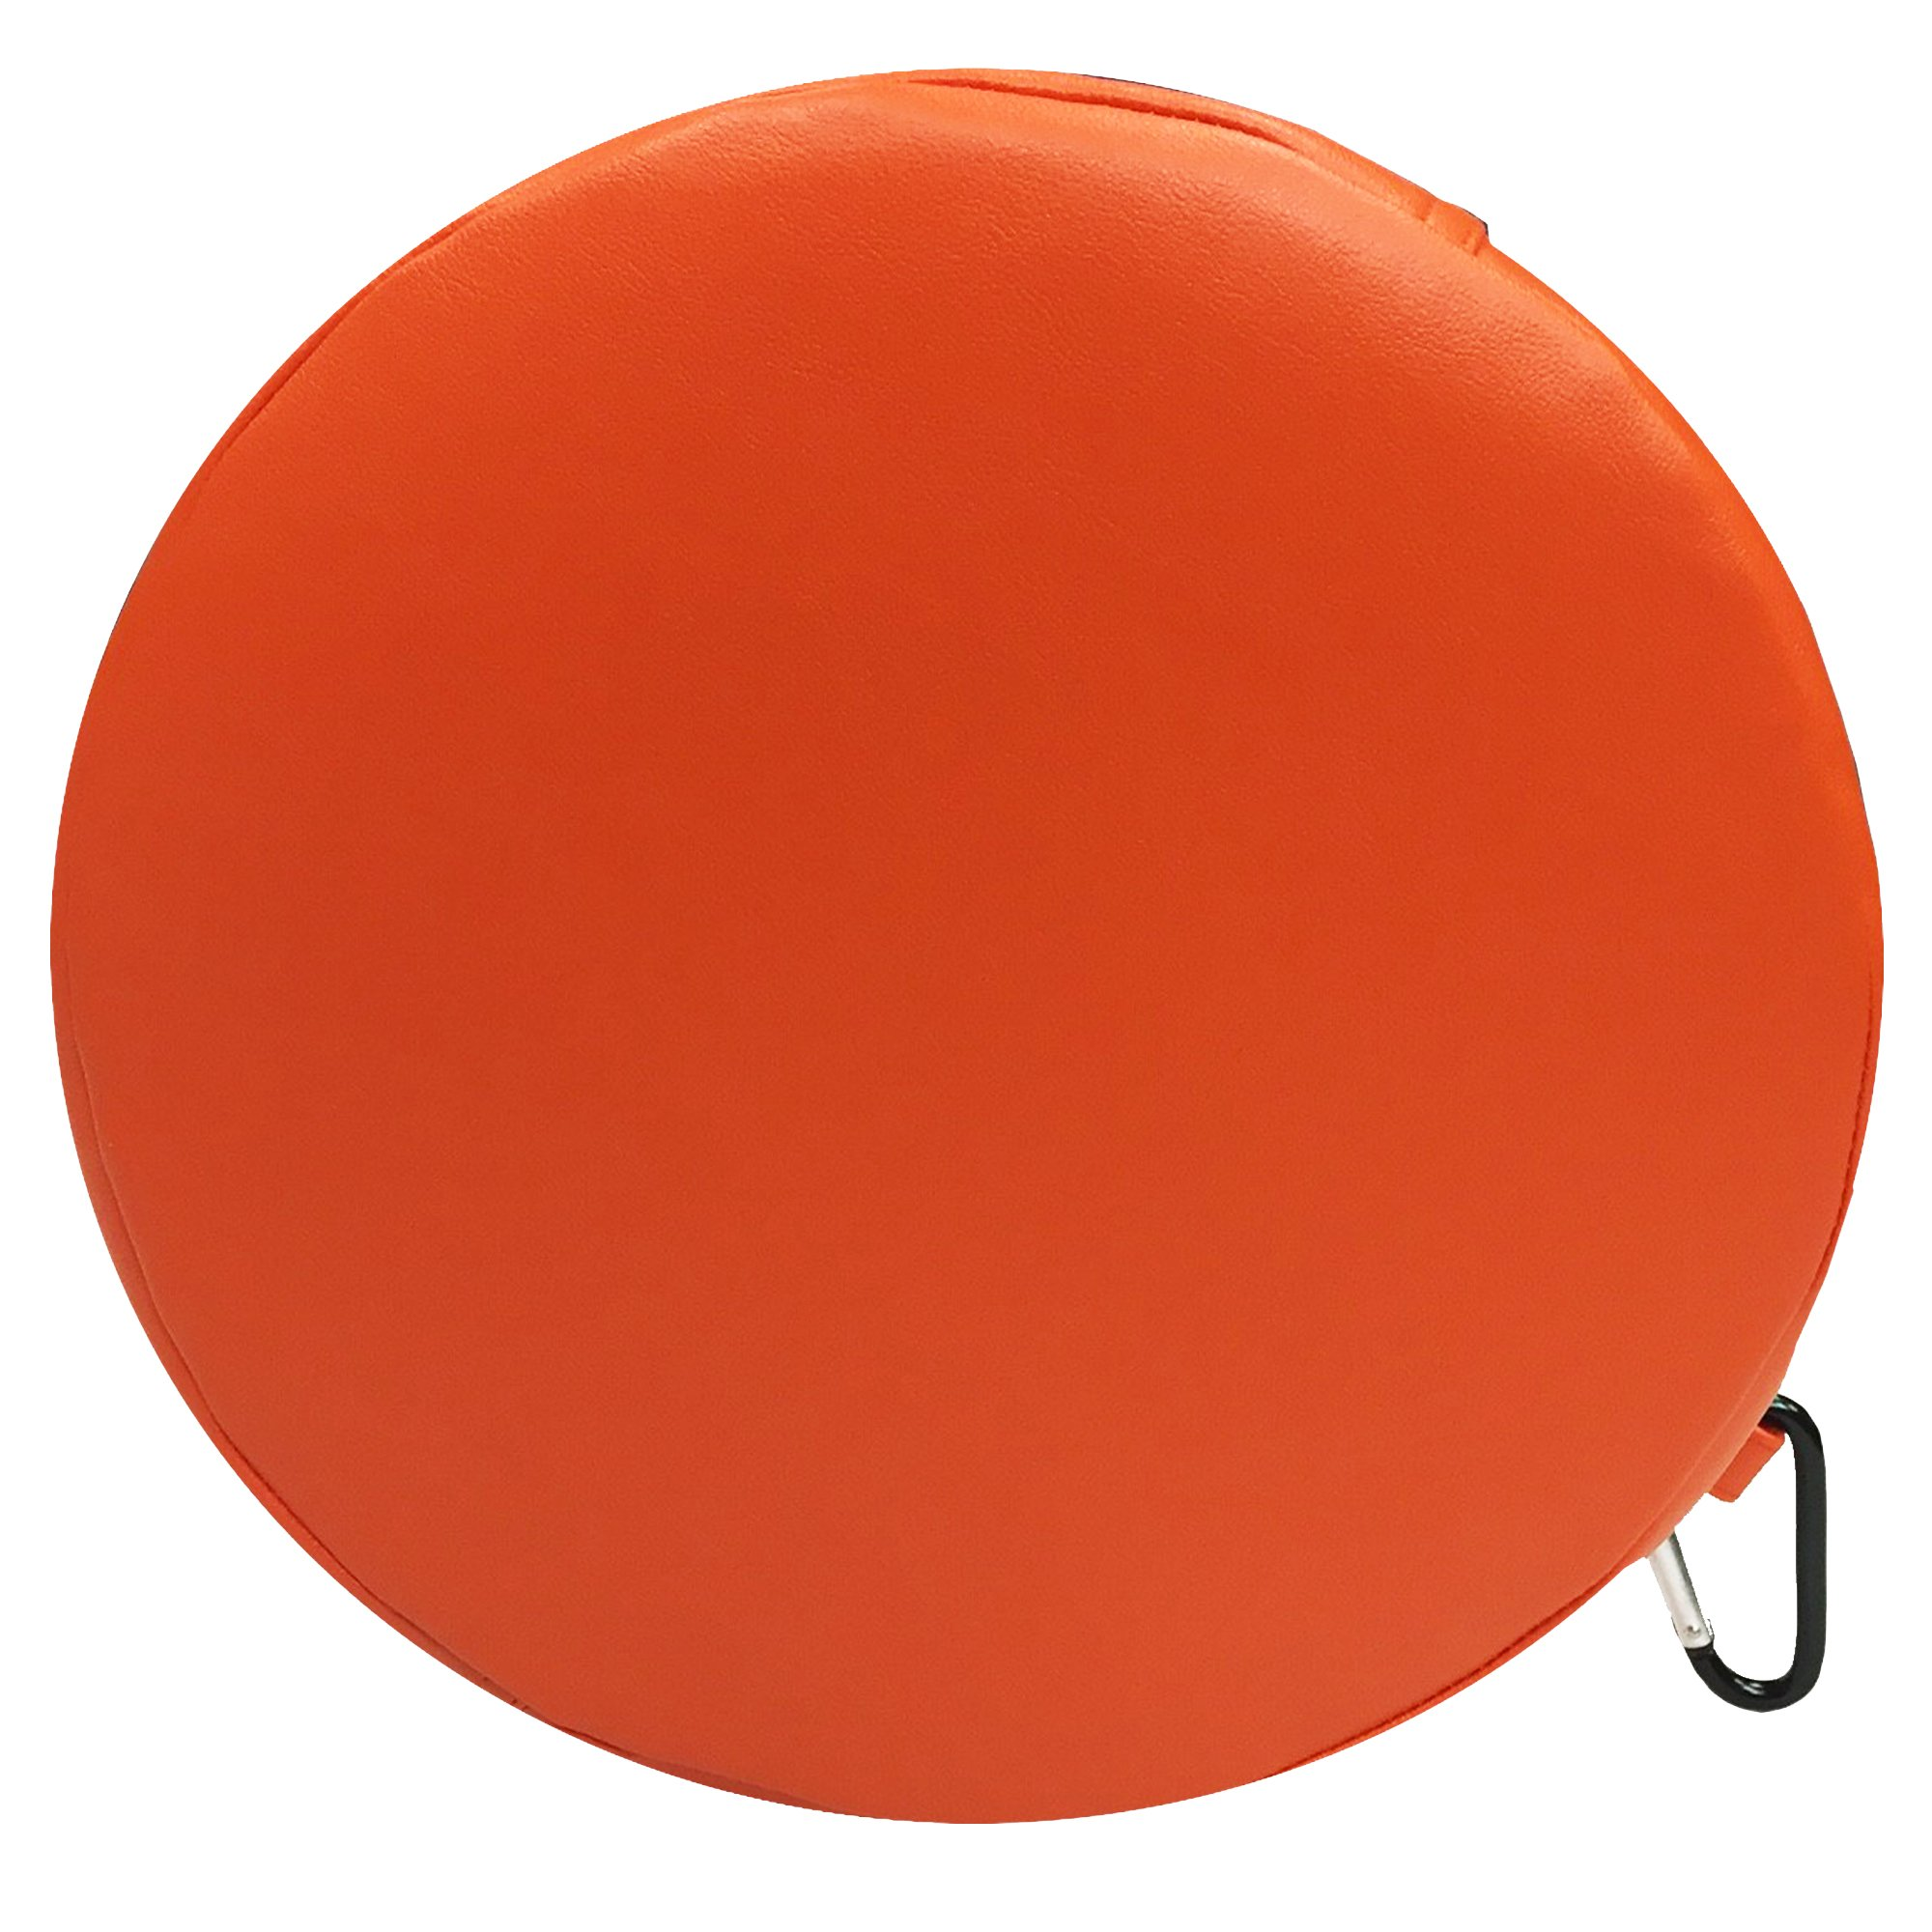 Senseez Calming Cushion for Kids - Orange Circle